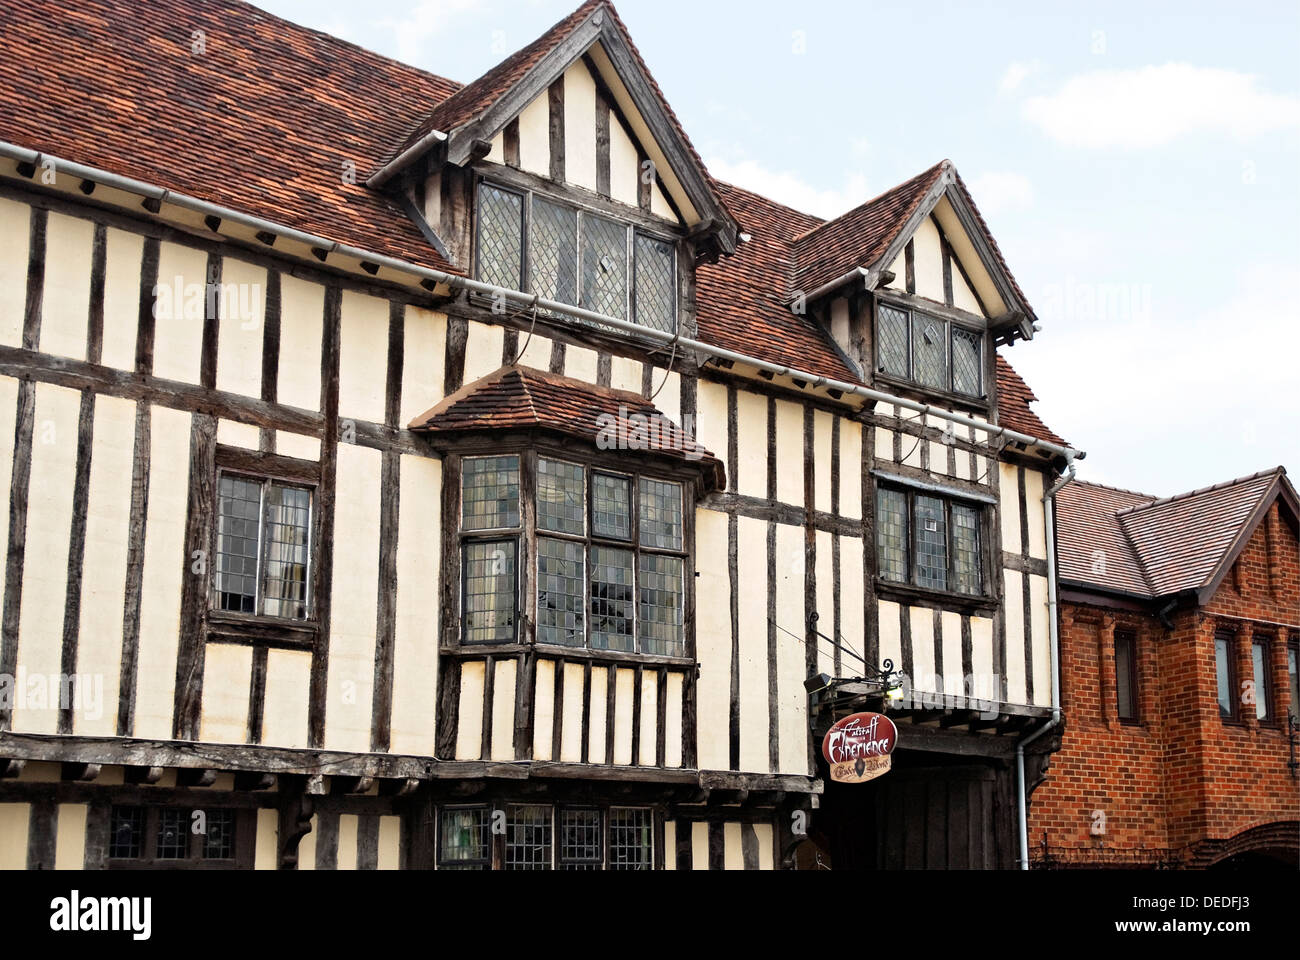 The Falstaff Experience in Stratford upon Avon, a award-winning visitor attraction that brings the 16th century to life. - Stock Image